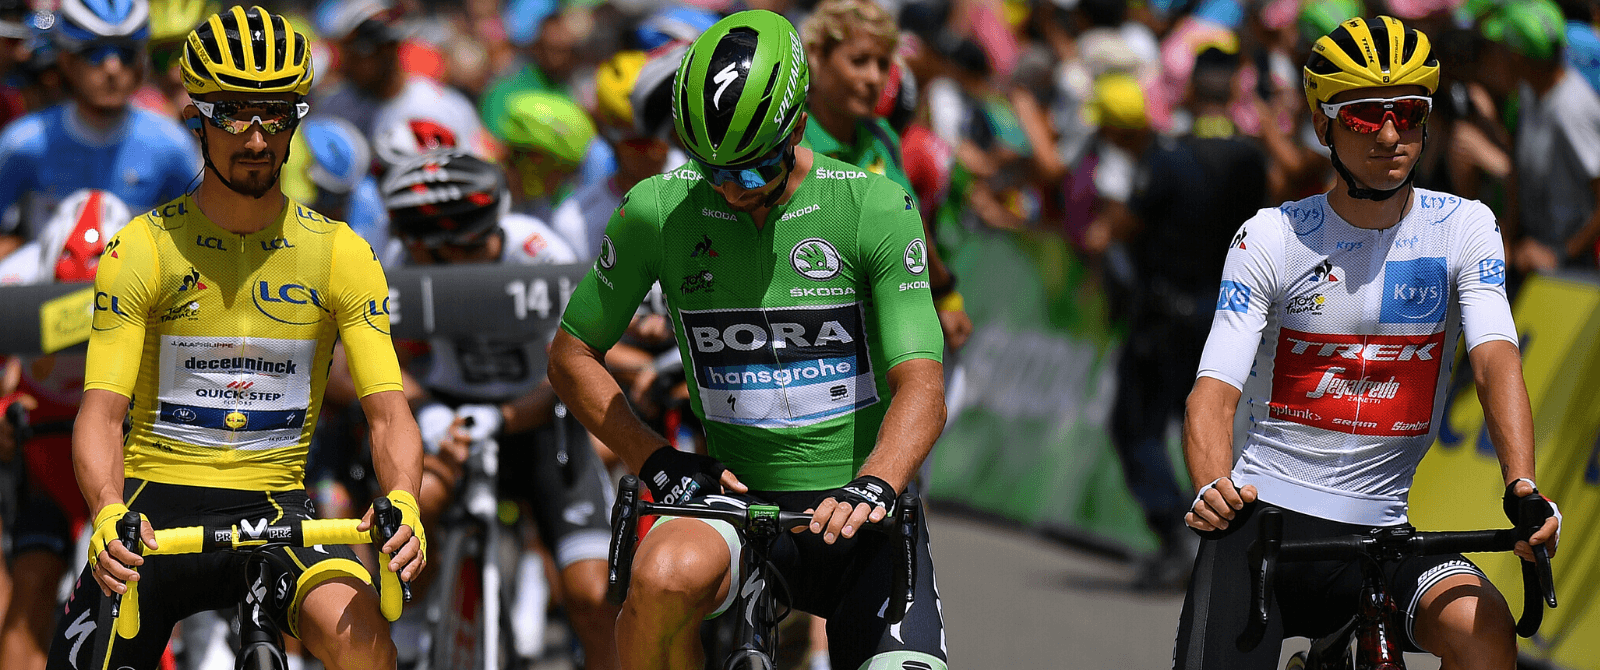 What is the green jersey in the Tour de France?